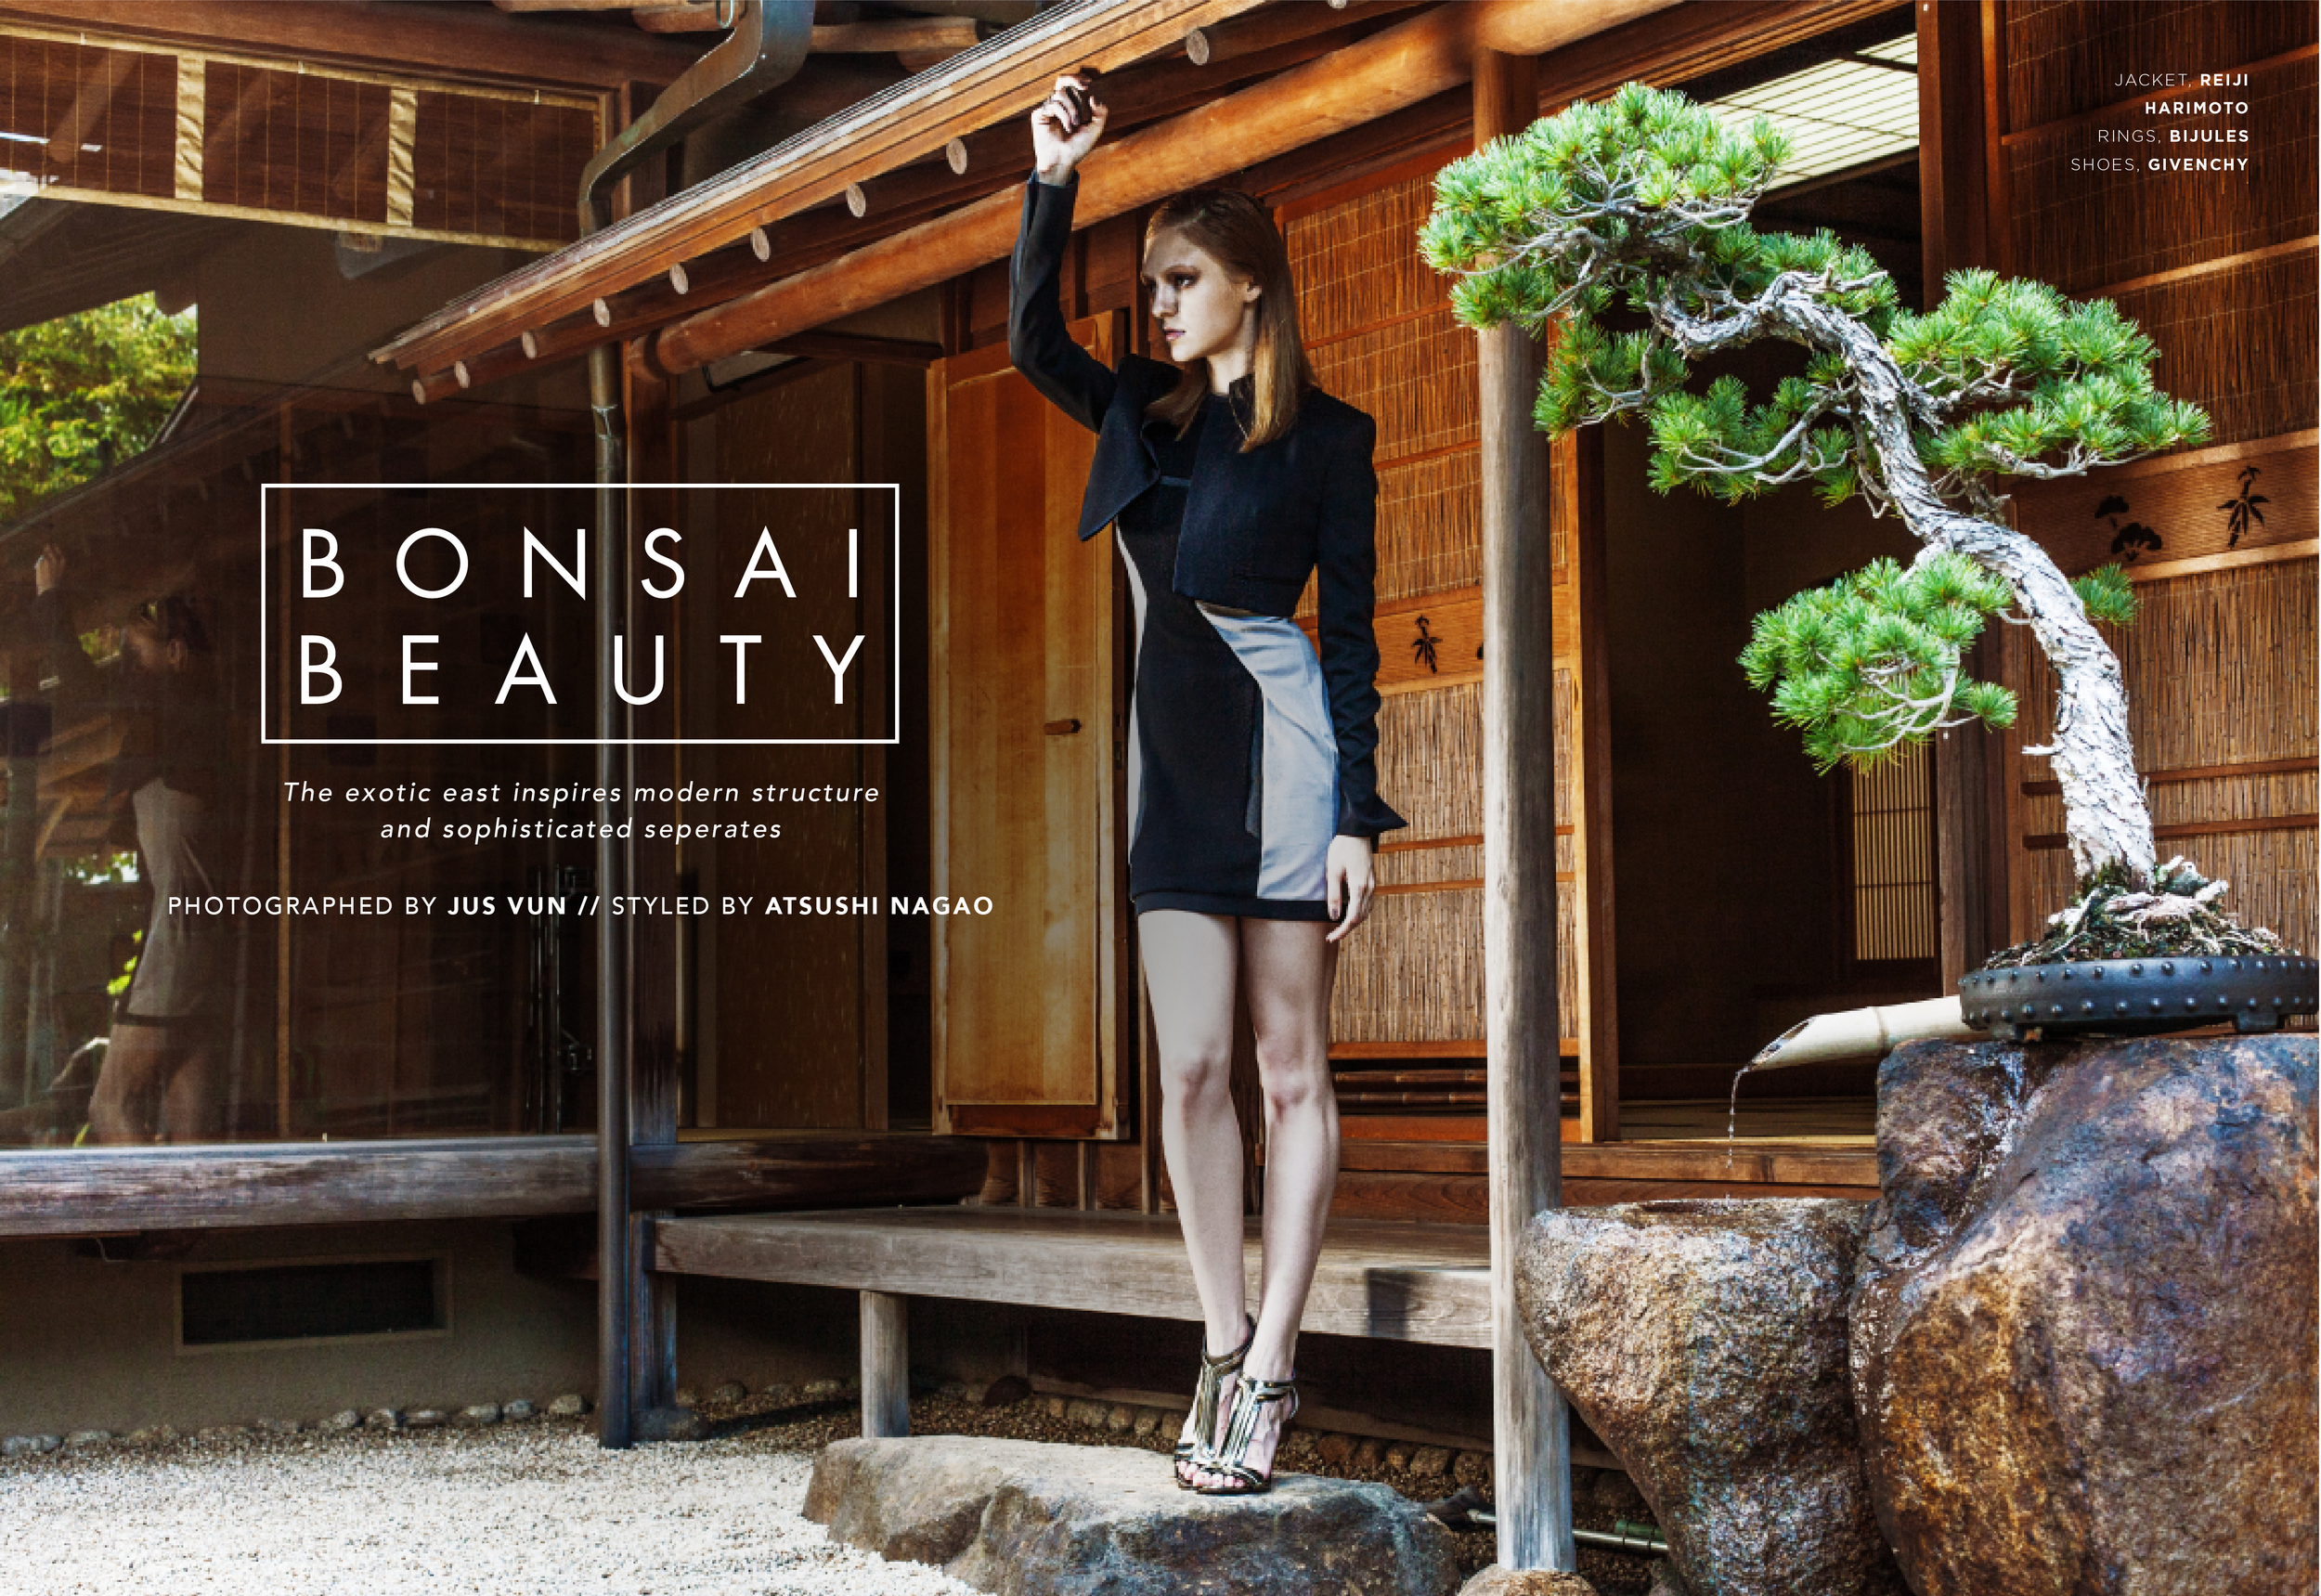 Spread-Bonsai Beauty1.jpg